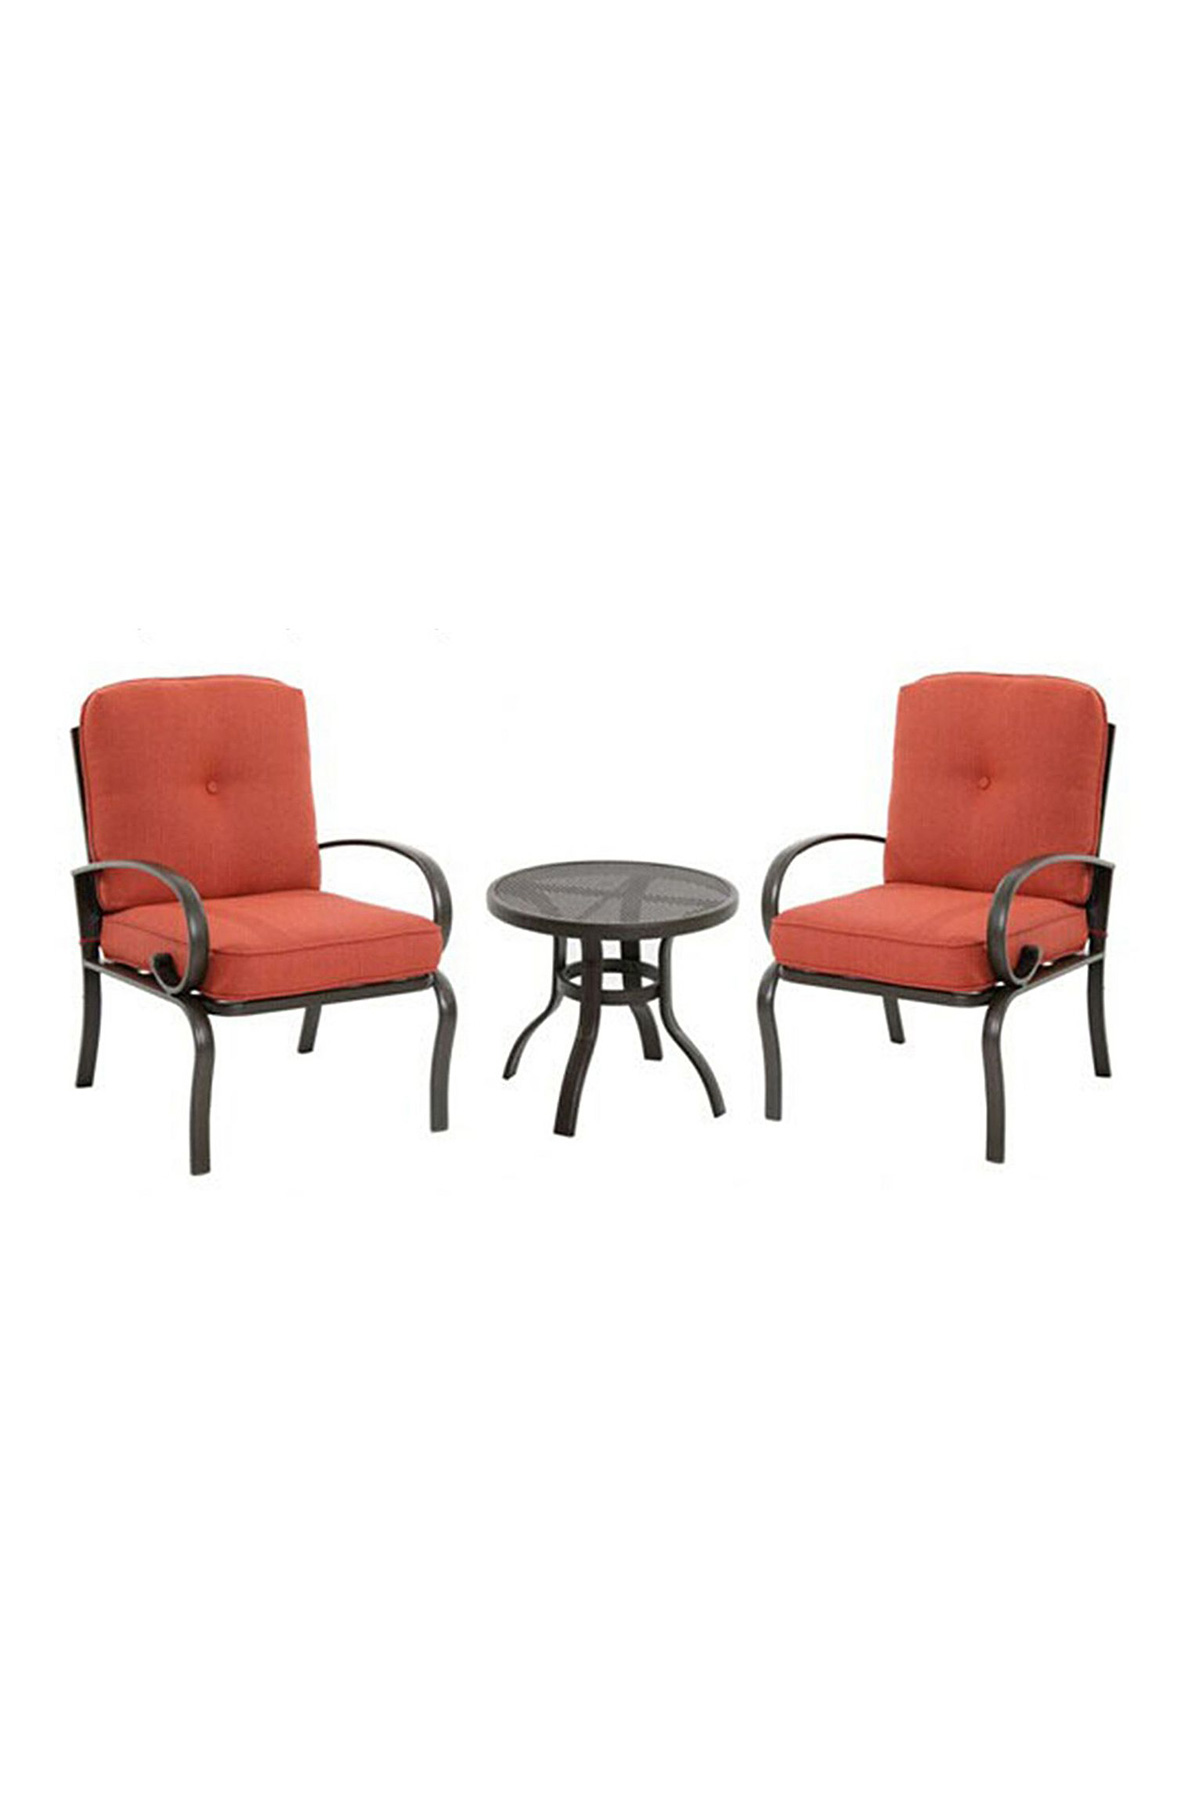 Claremont Side Table & Chair 3-Piece Set